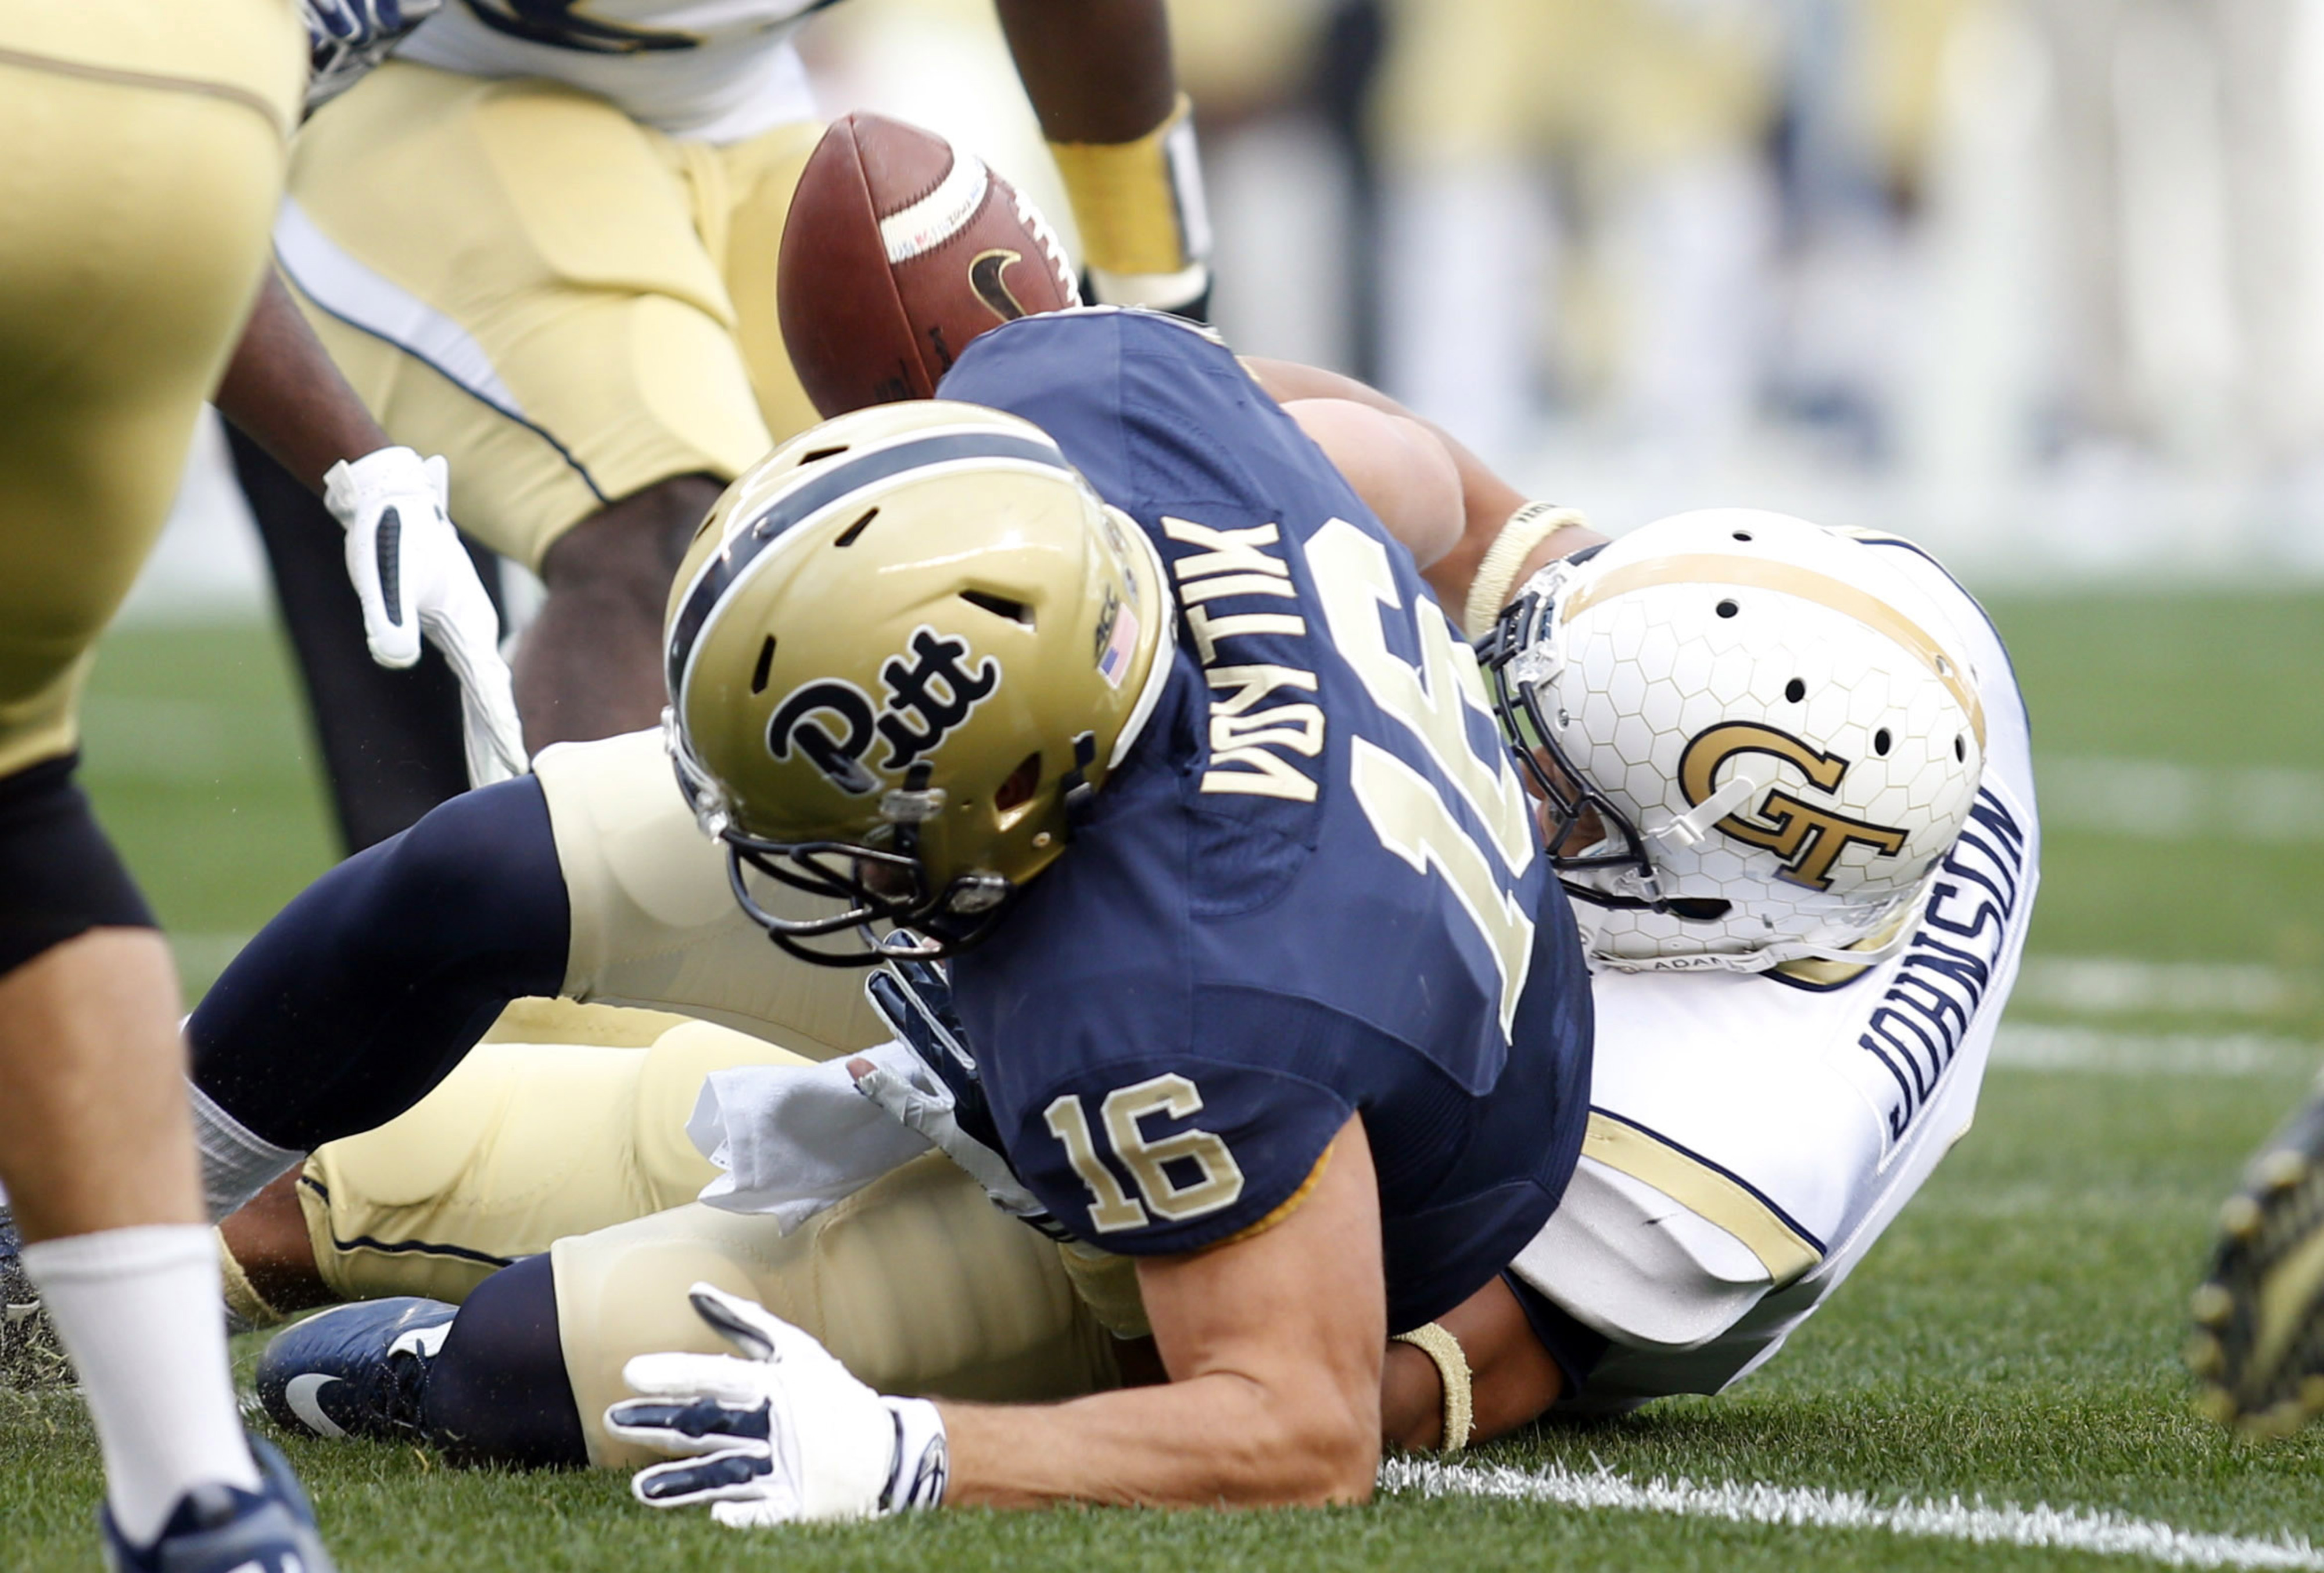 Isaiah Johnson of Georgia Tech forcing a Chad Voytik fumble